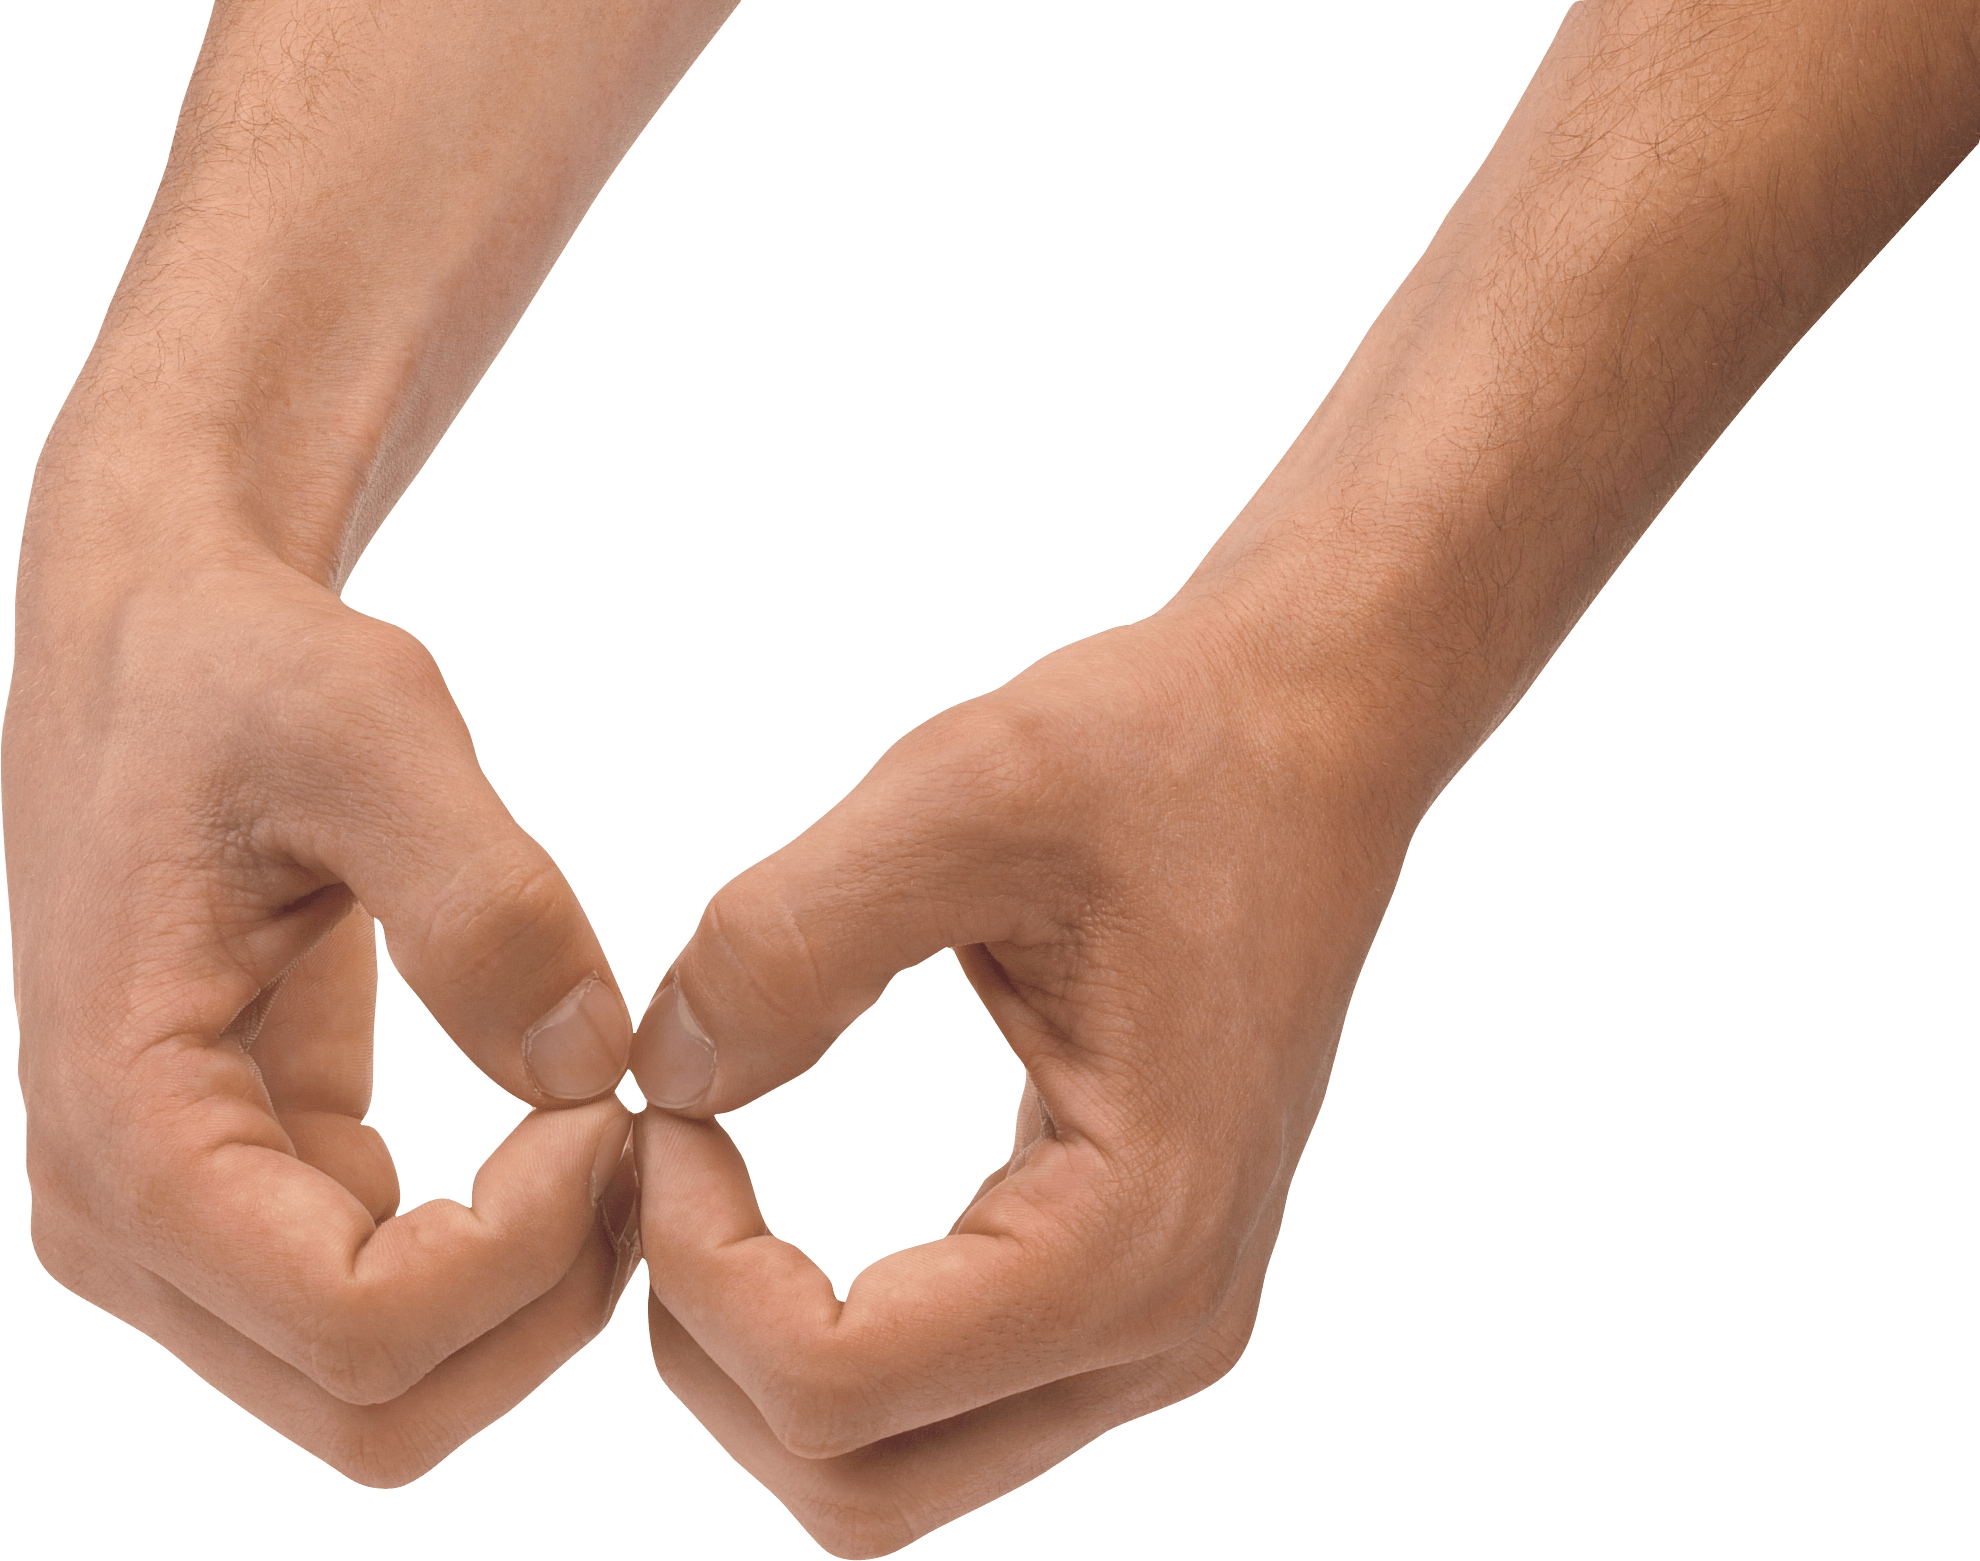 Hands Png Hand Image  PNG Image